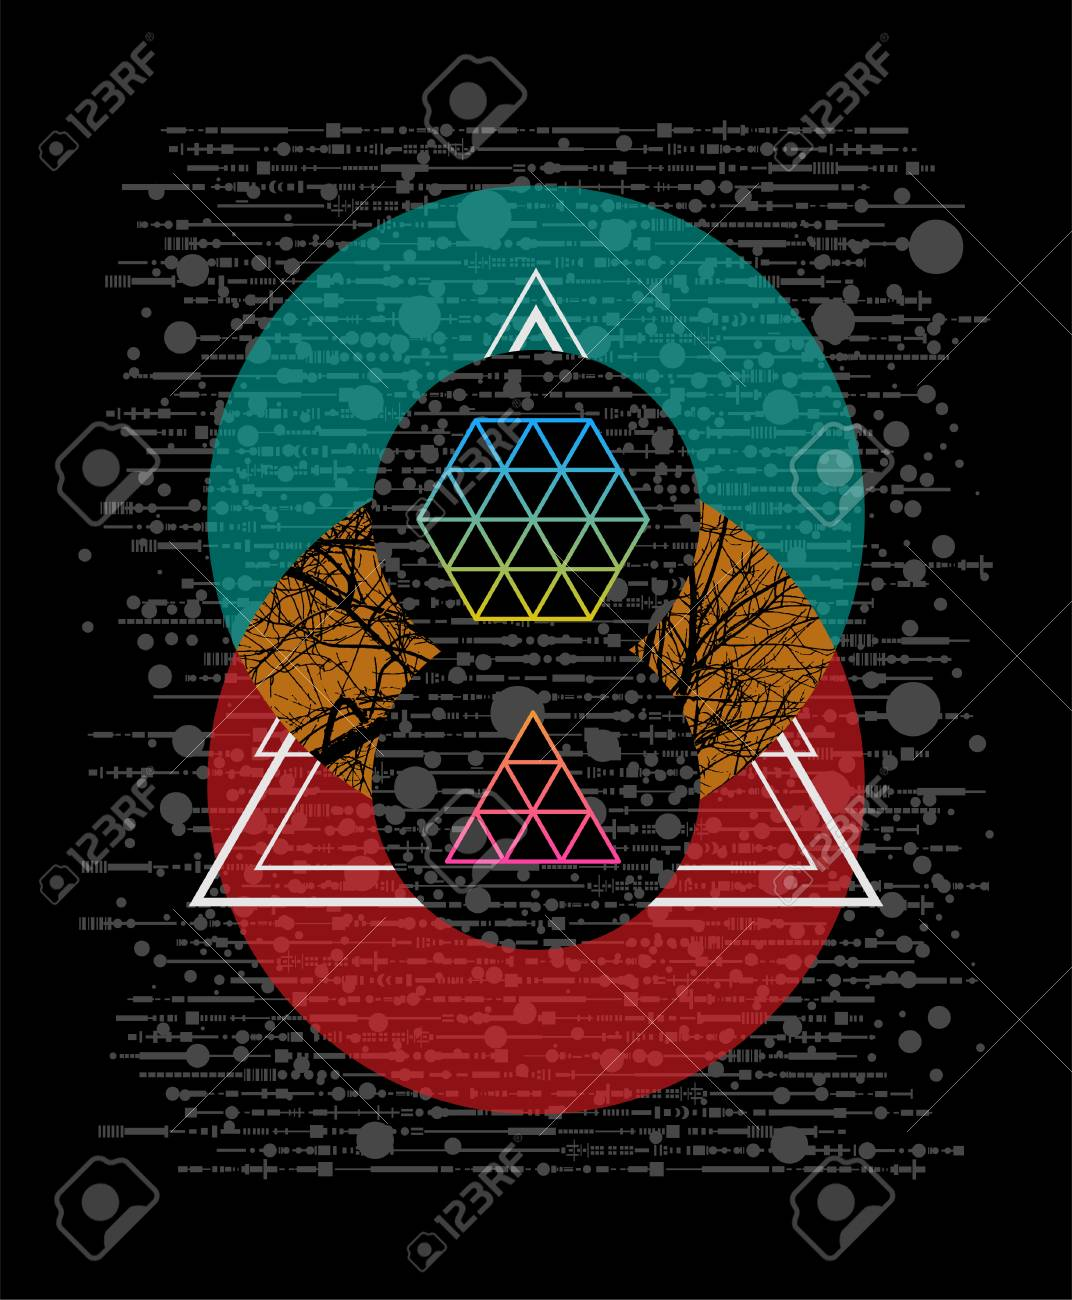 Geometric Circle And Triangle Vector Illustration T Shirt Design